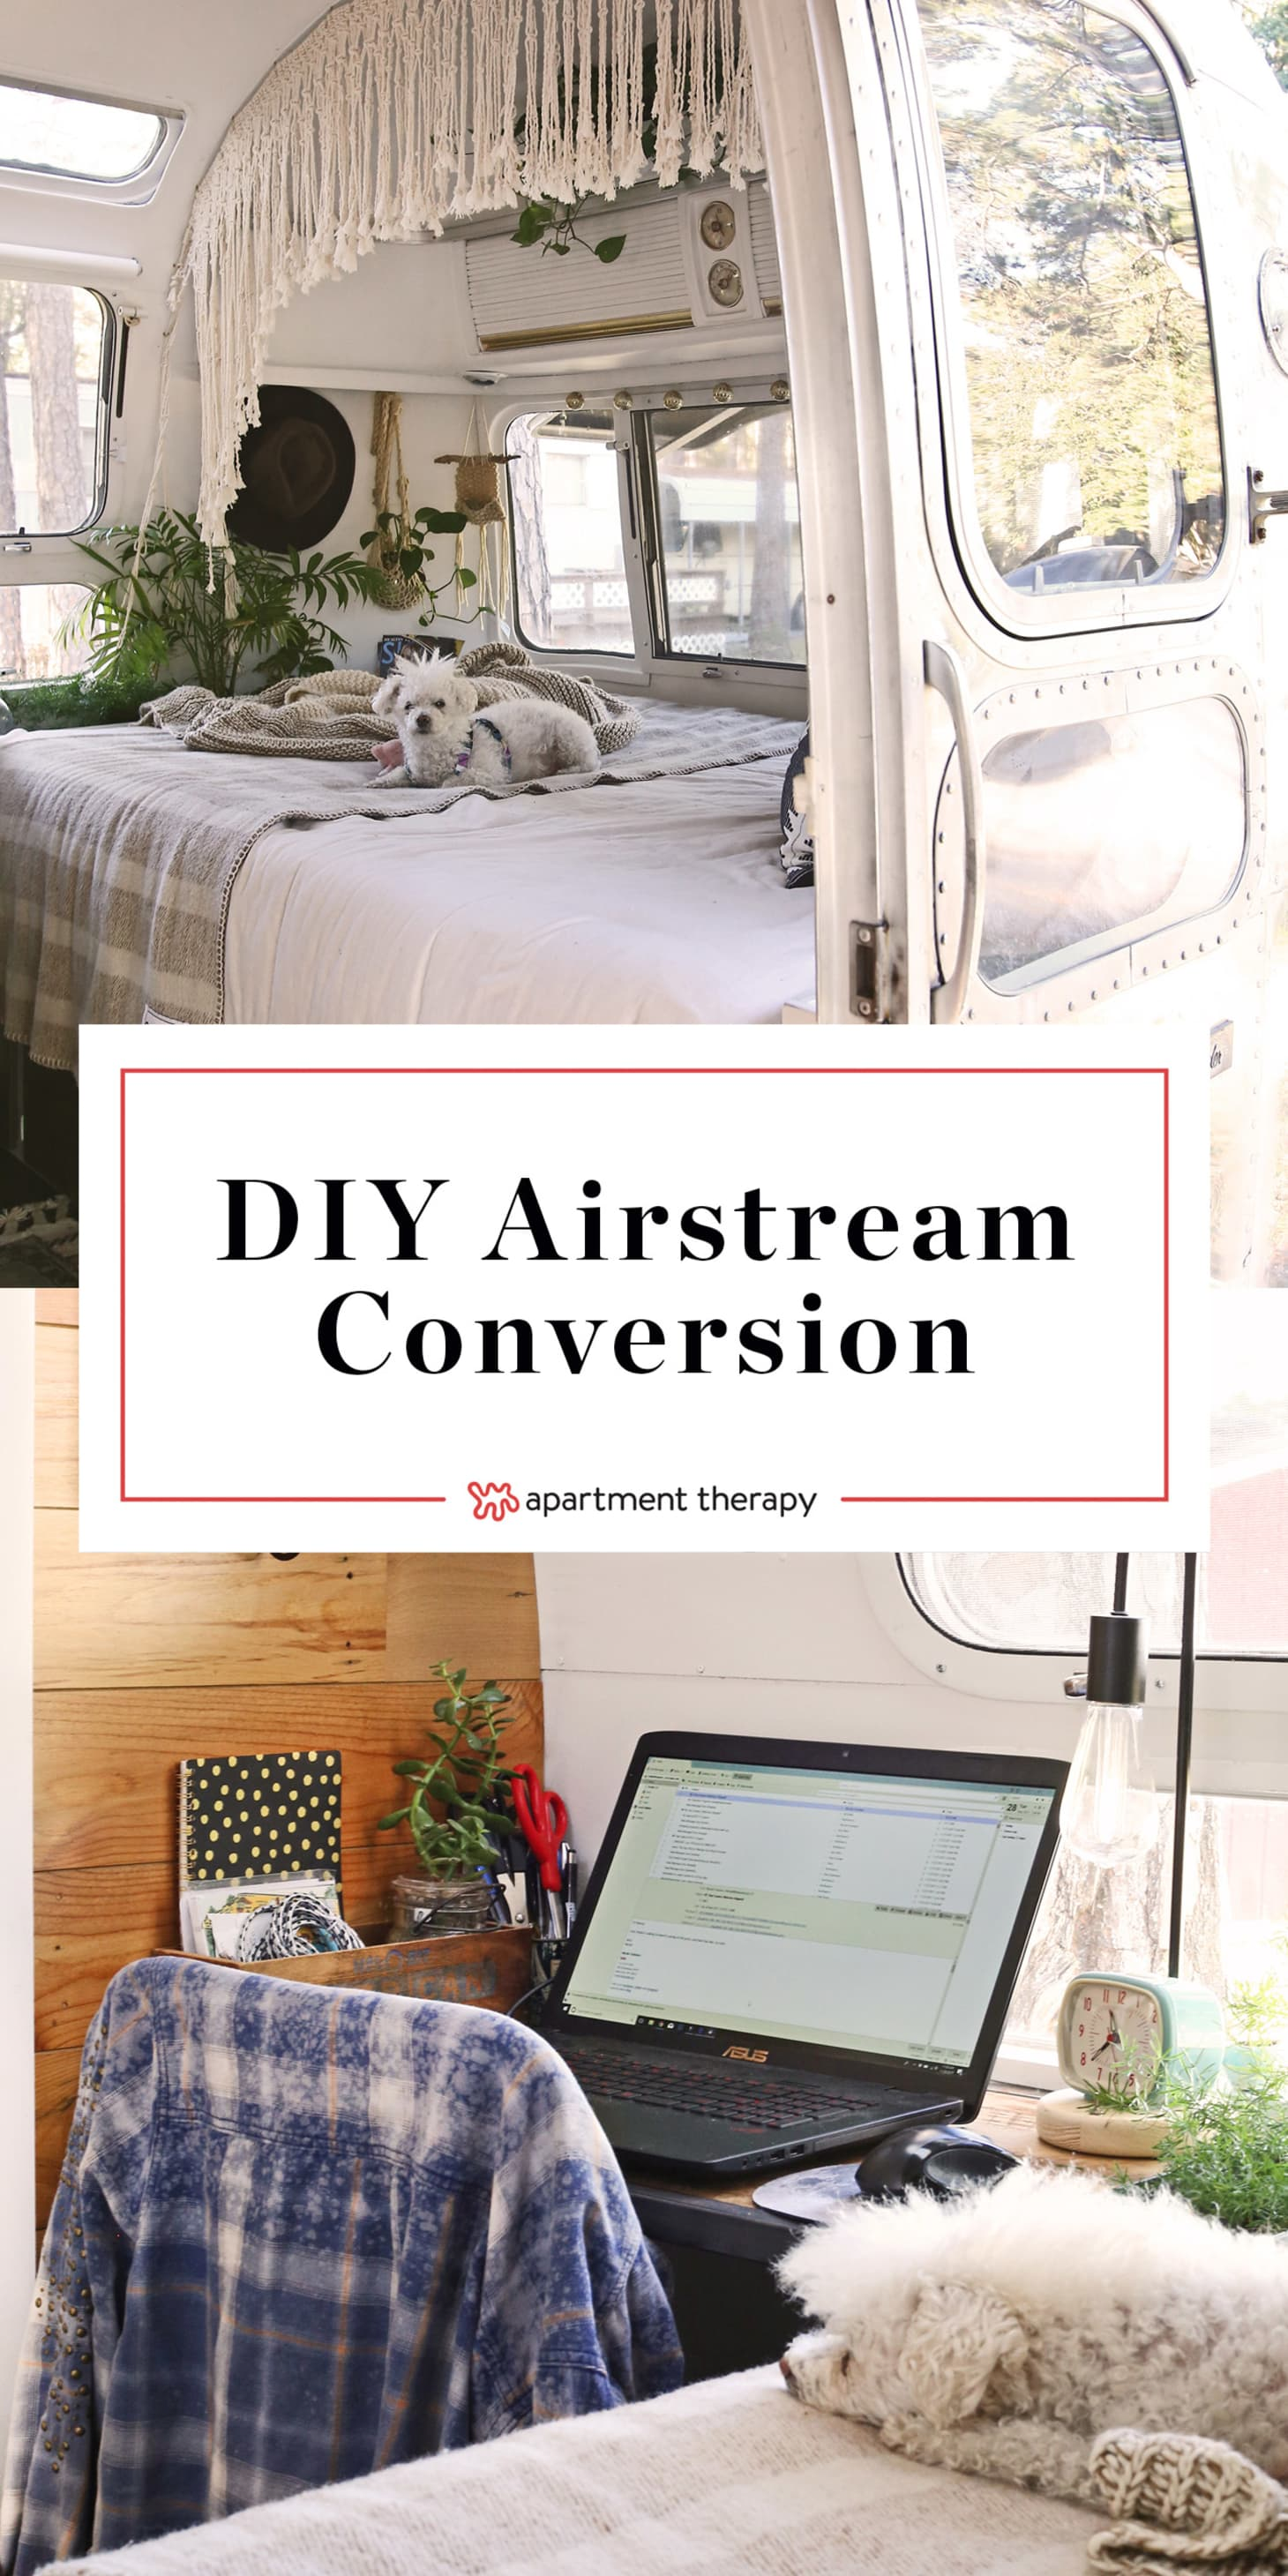 House Tour: An Updated & Remodeled Airstream Trailer | Apartment Therapy